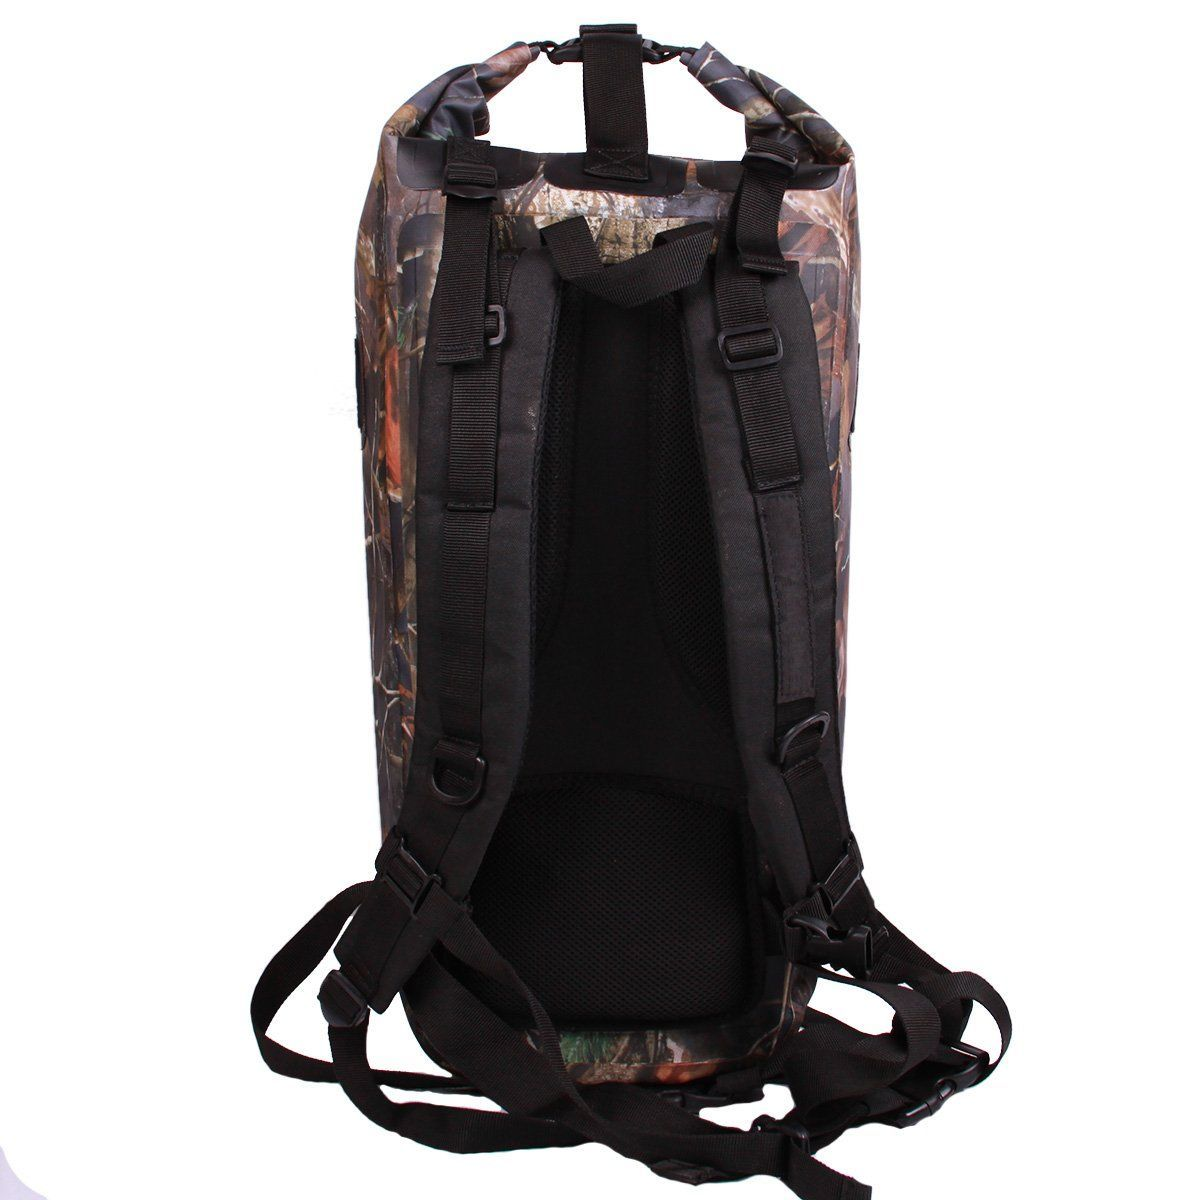 89e1be04f 106 Best Products images in 2019 | Backpack, Backpacker, Backpacks